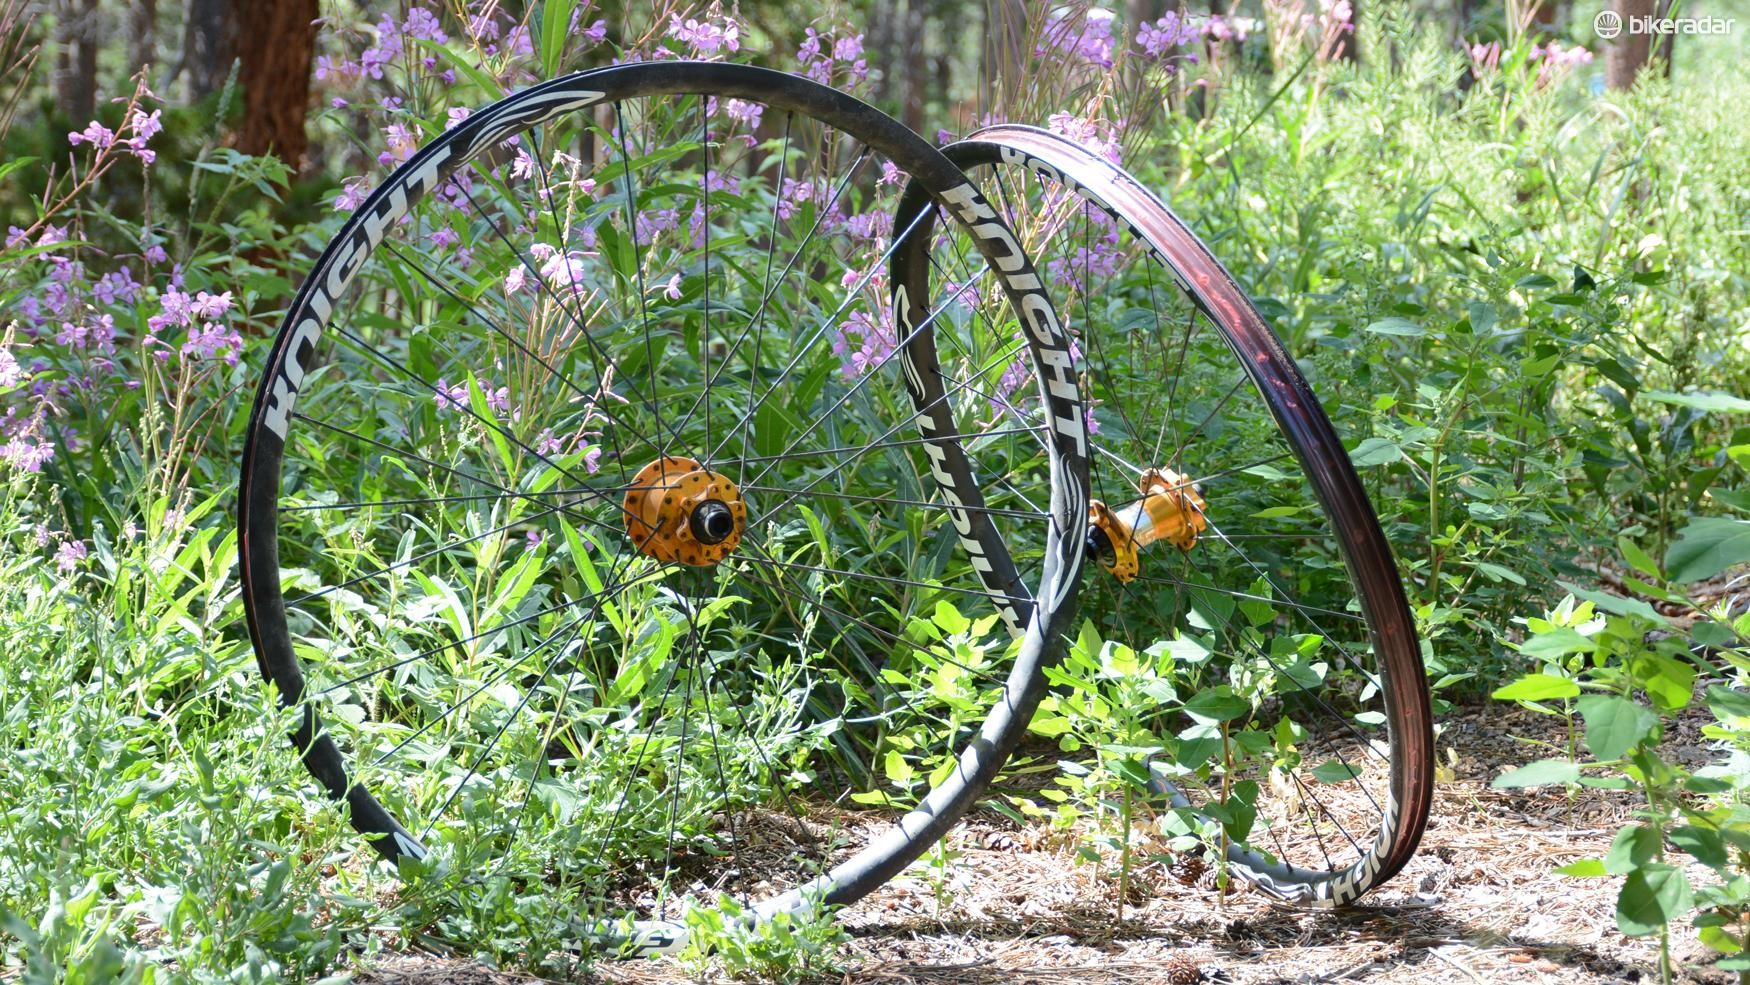 Knight Composite's Trail wheels are much more than just a quick ride